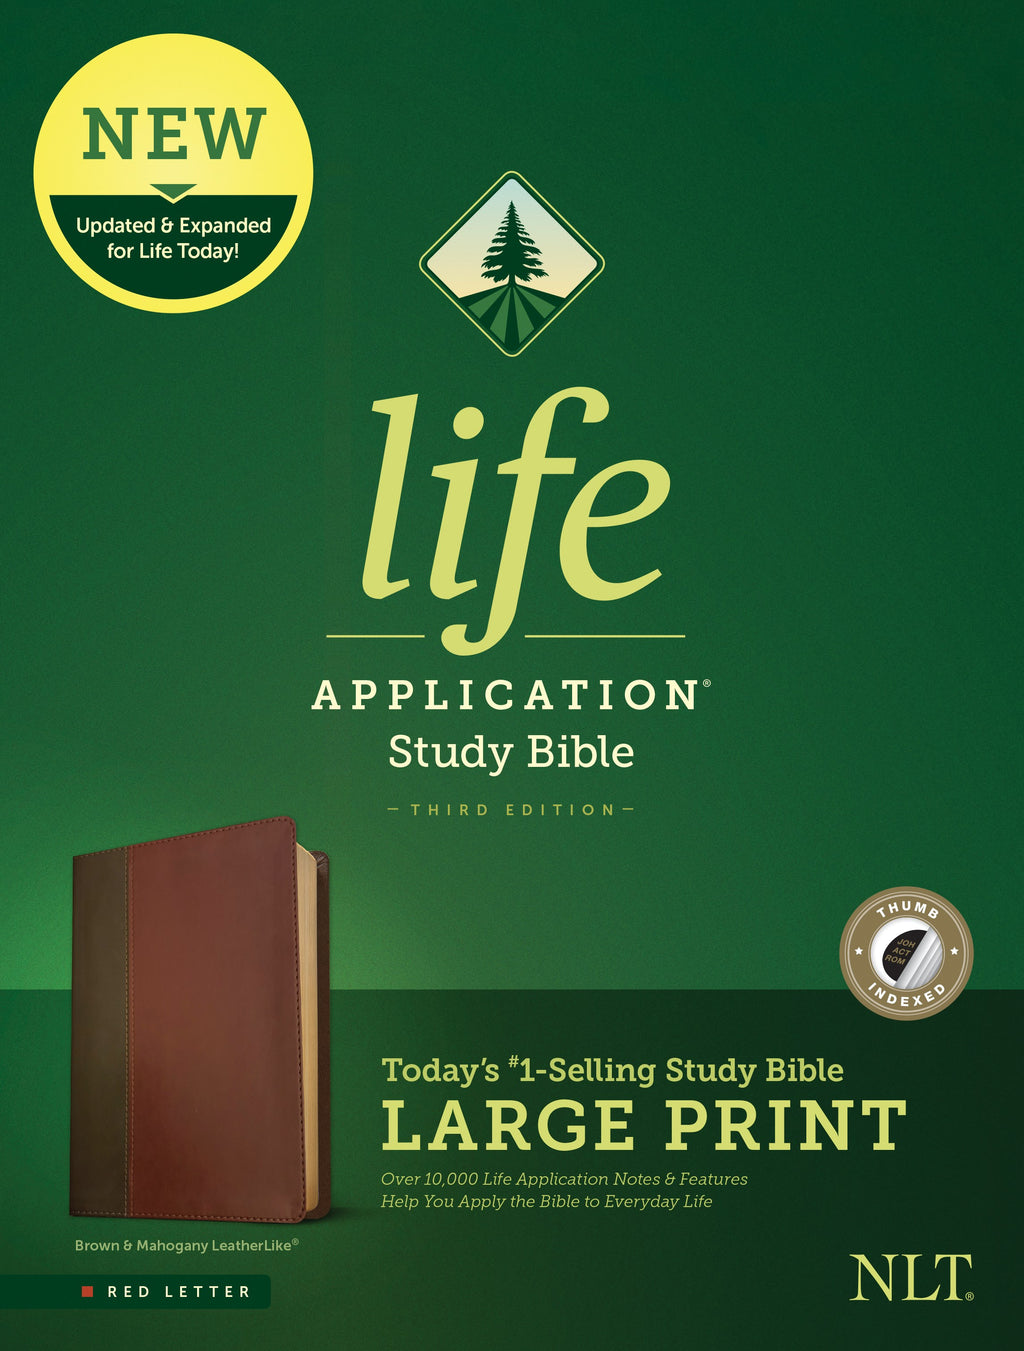 NLT Life Application Study Bible-Large Print (Third Edition) (RL)-Brown-Tan LeatherLike Indexed